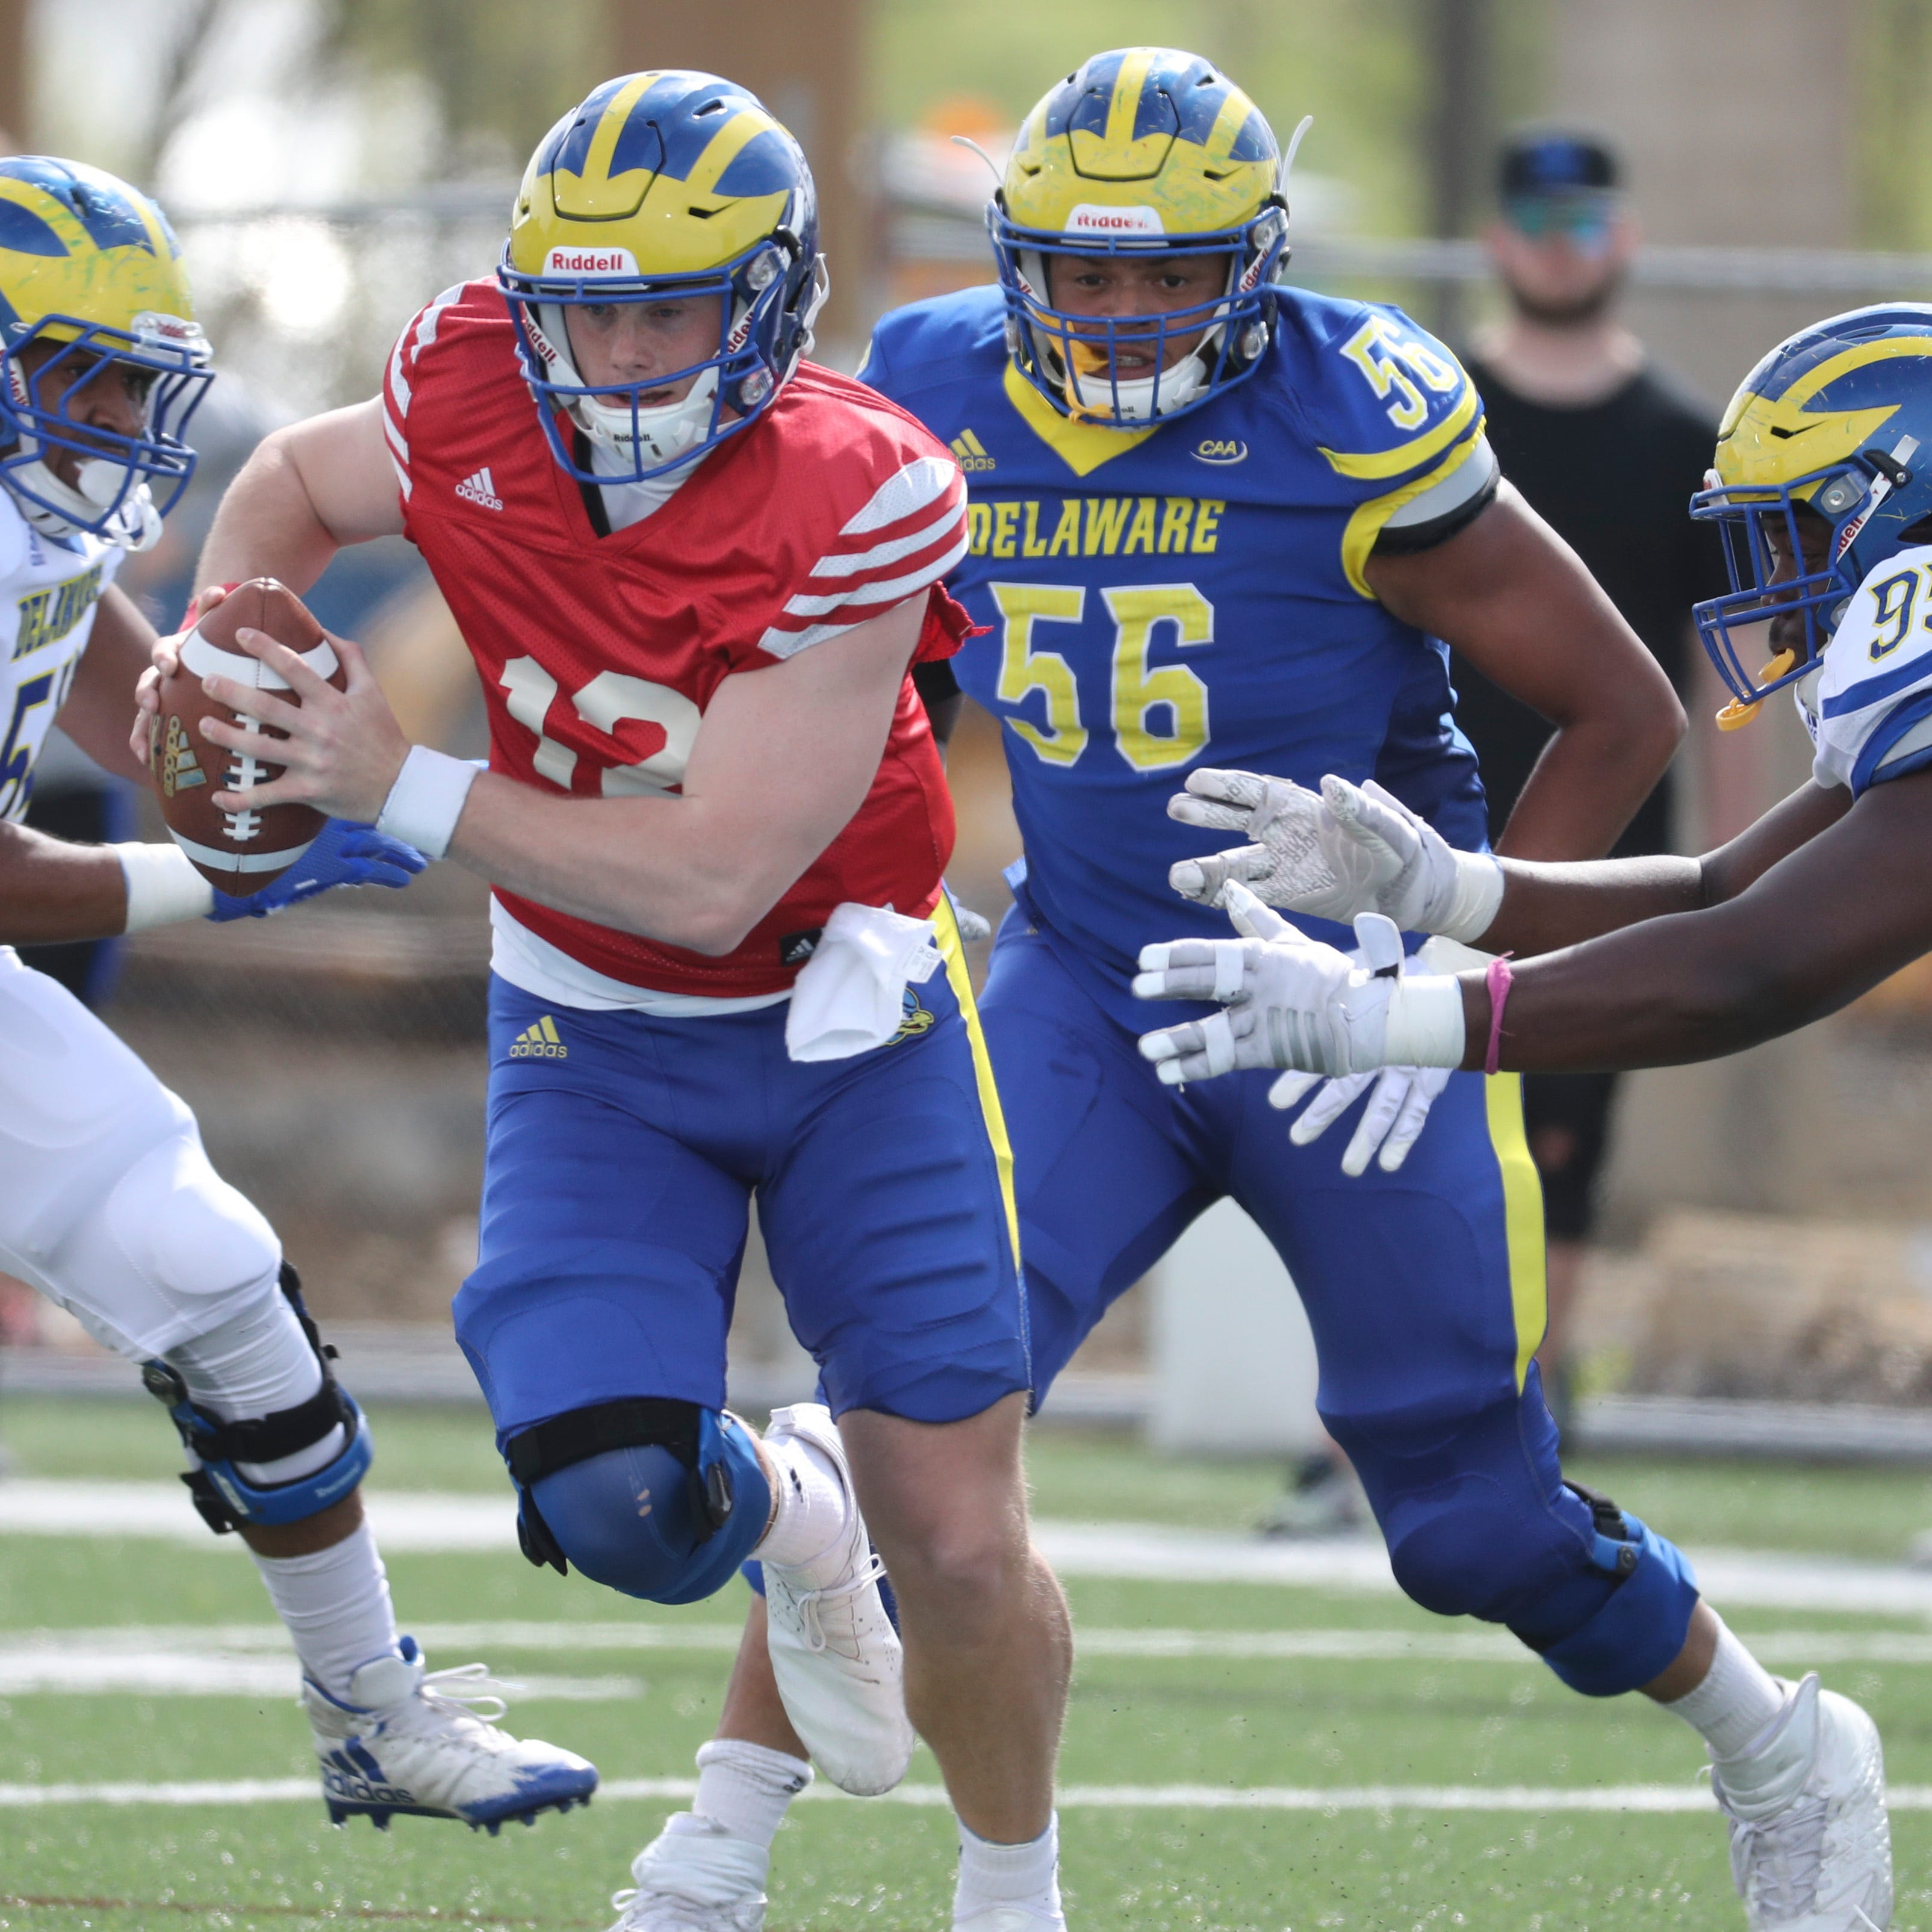 Defense rules in Delaware Blue-White football spring game